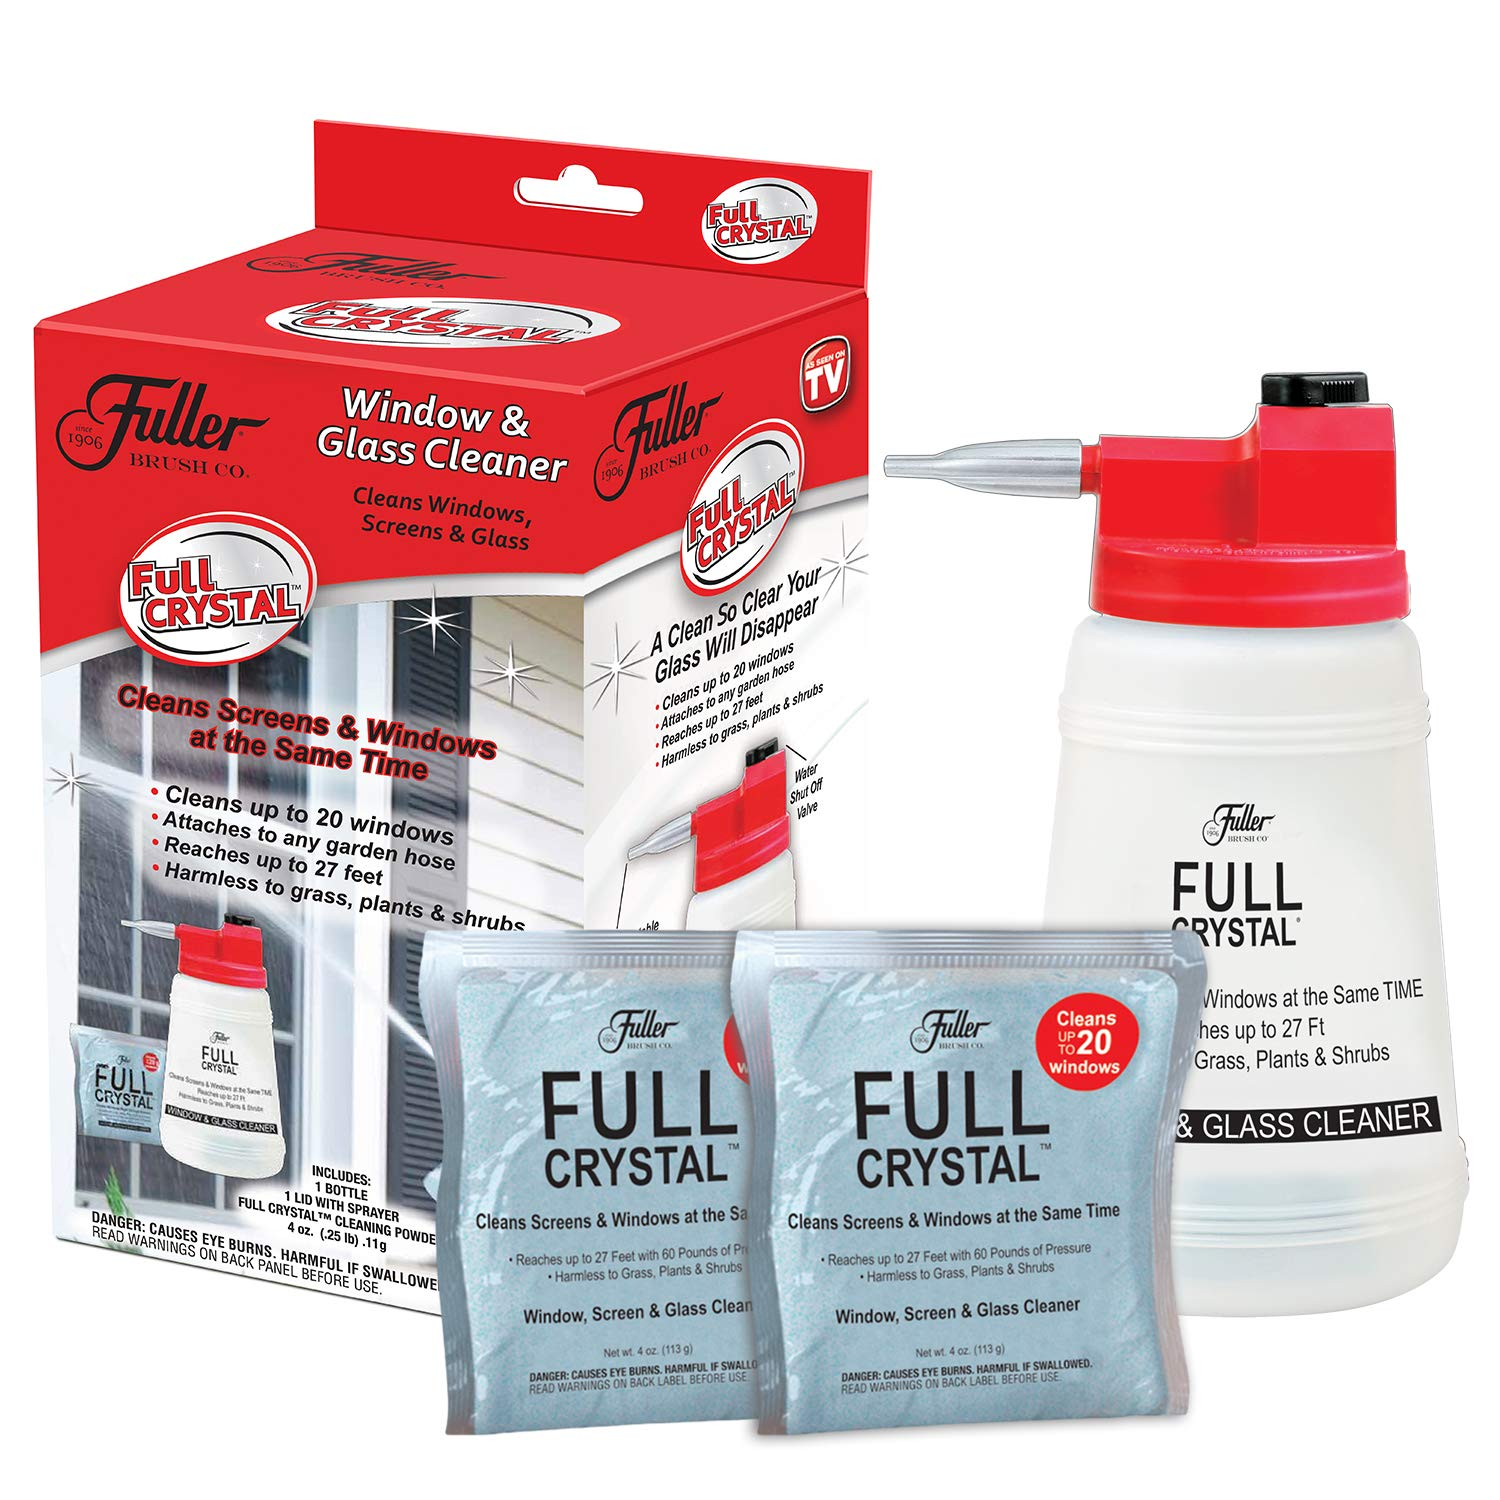 Full Crystal Kit - Bottle, Lid with Hose Attachment, and Two 4 oz. Crystal Powder Exterior Window Cleaner Packets for Glass and Screens (Cleans Up to 40 Windows)